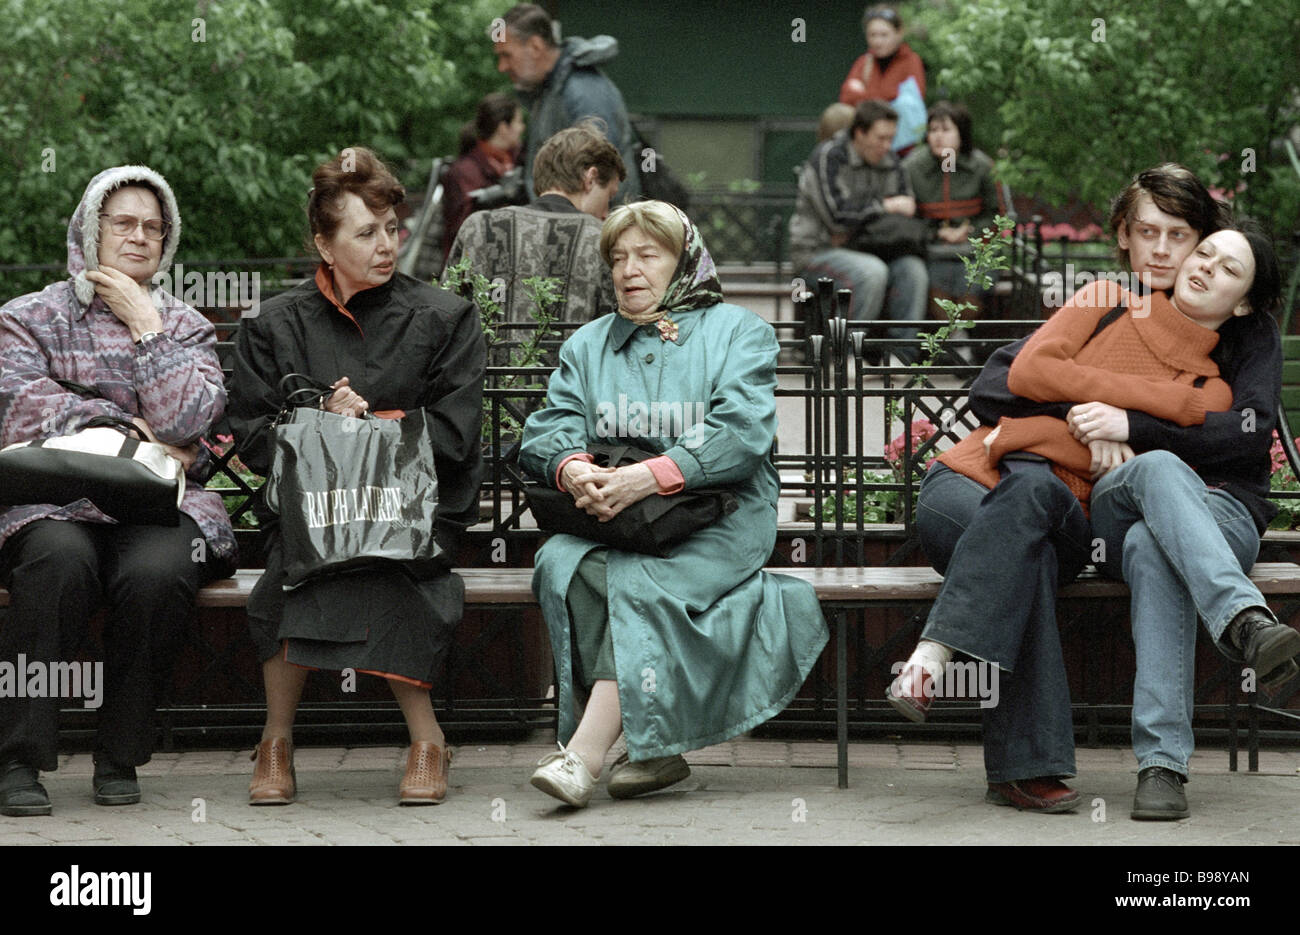 St Petersburg residents and guests relaxing in the Summer Garden - Stock Image